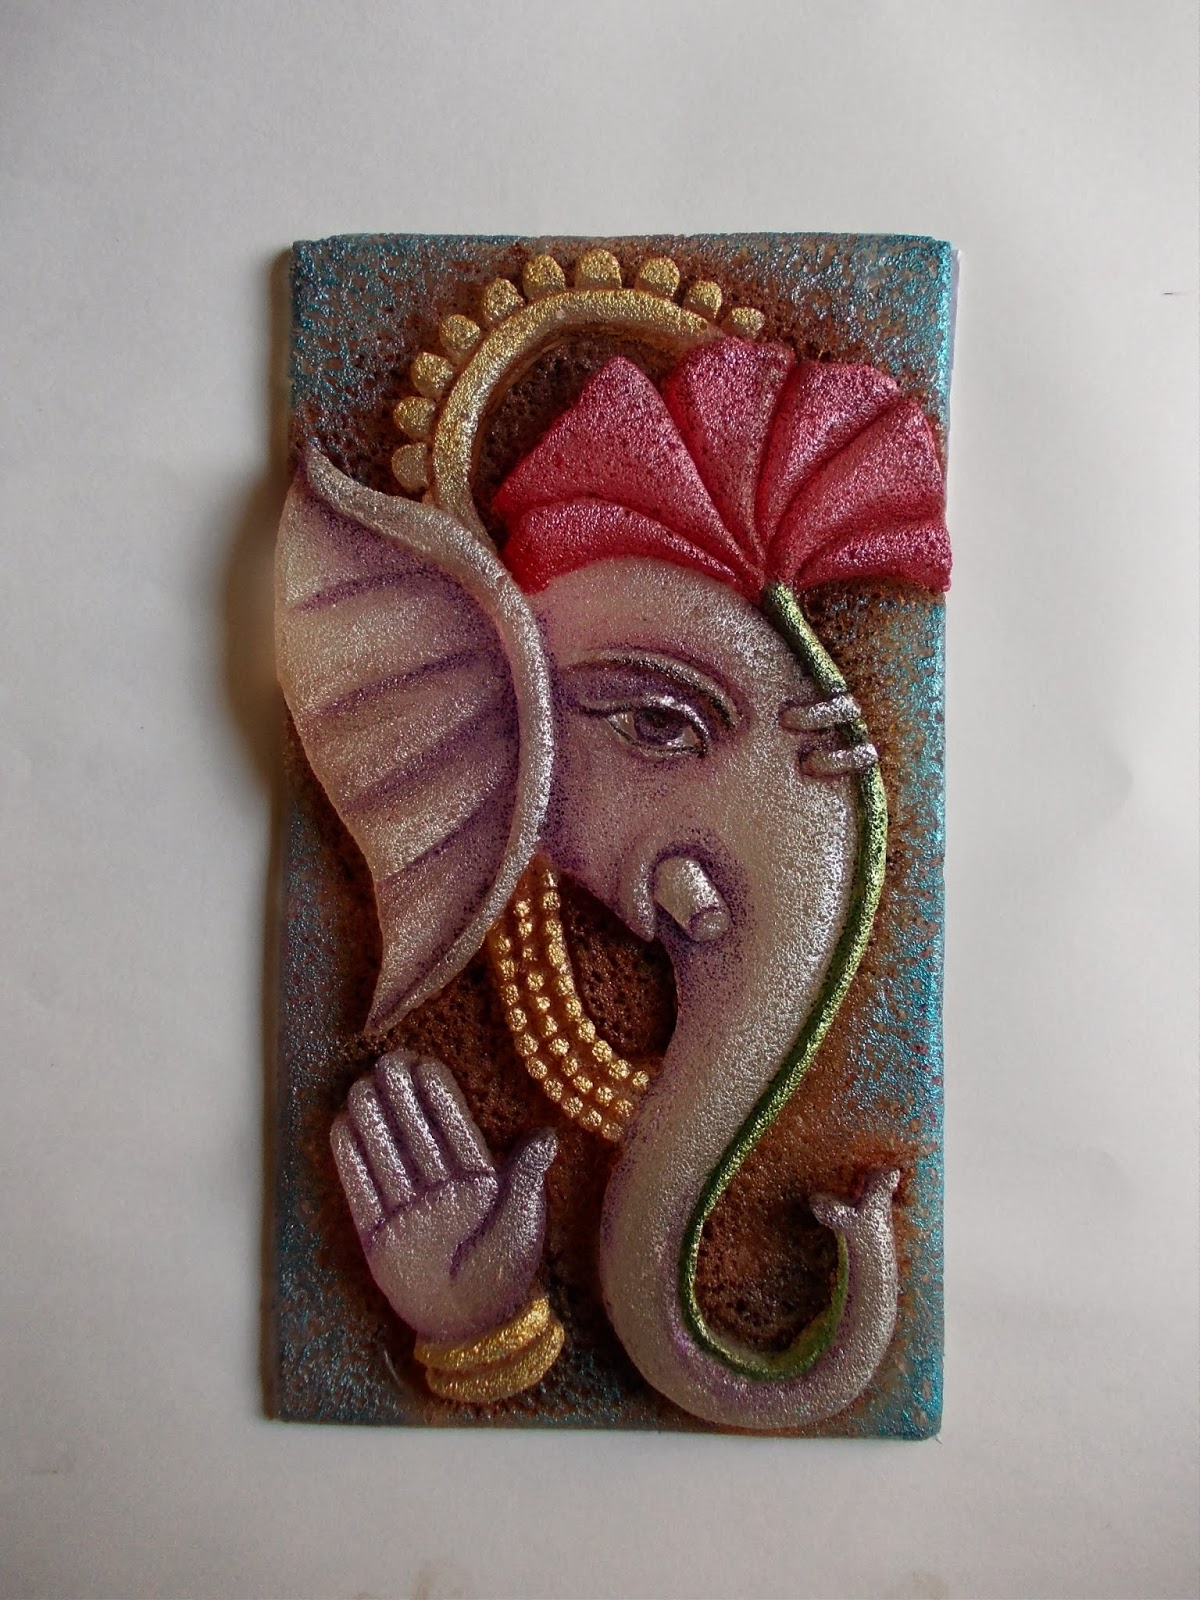 Mural art by datta vaidya for Clay mural designs